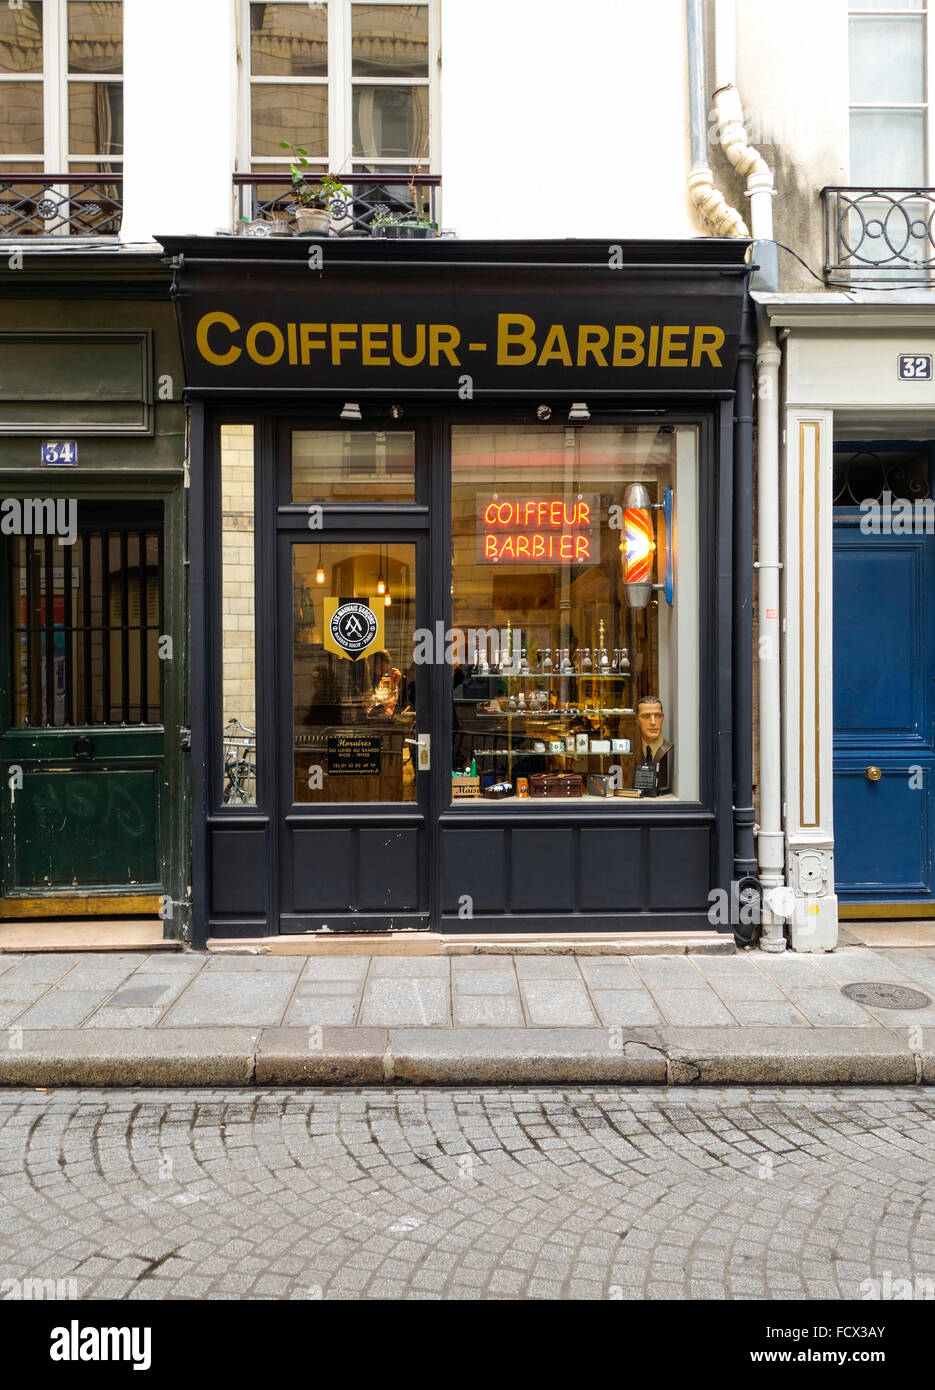 old style barber shop in center of paris france stock photo royalty free image 94001123 alamy. Black Bedroom Furniture Sets. Home Design Ideas